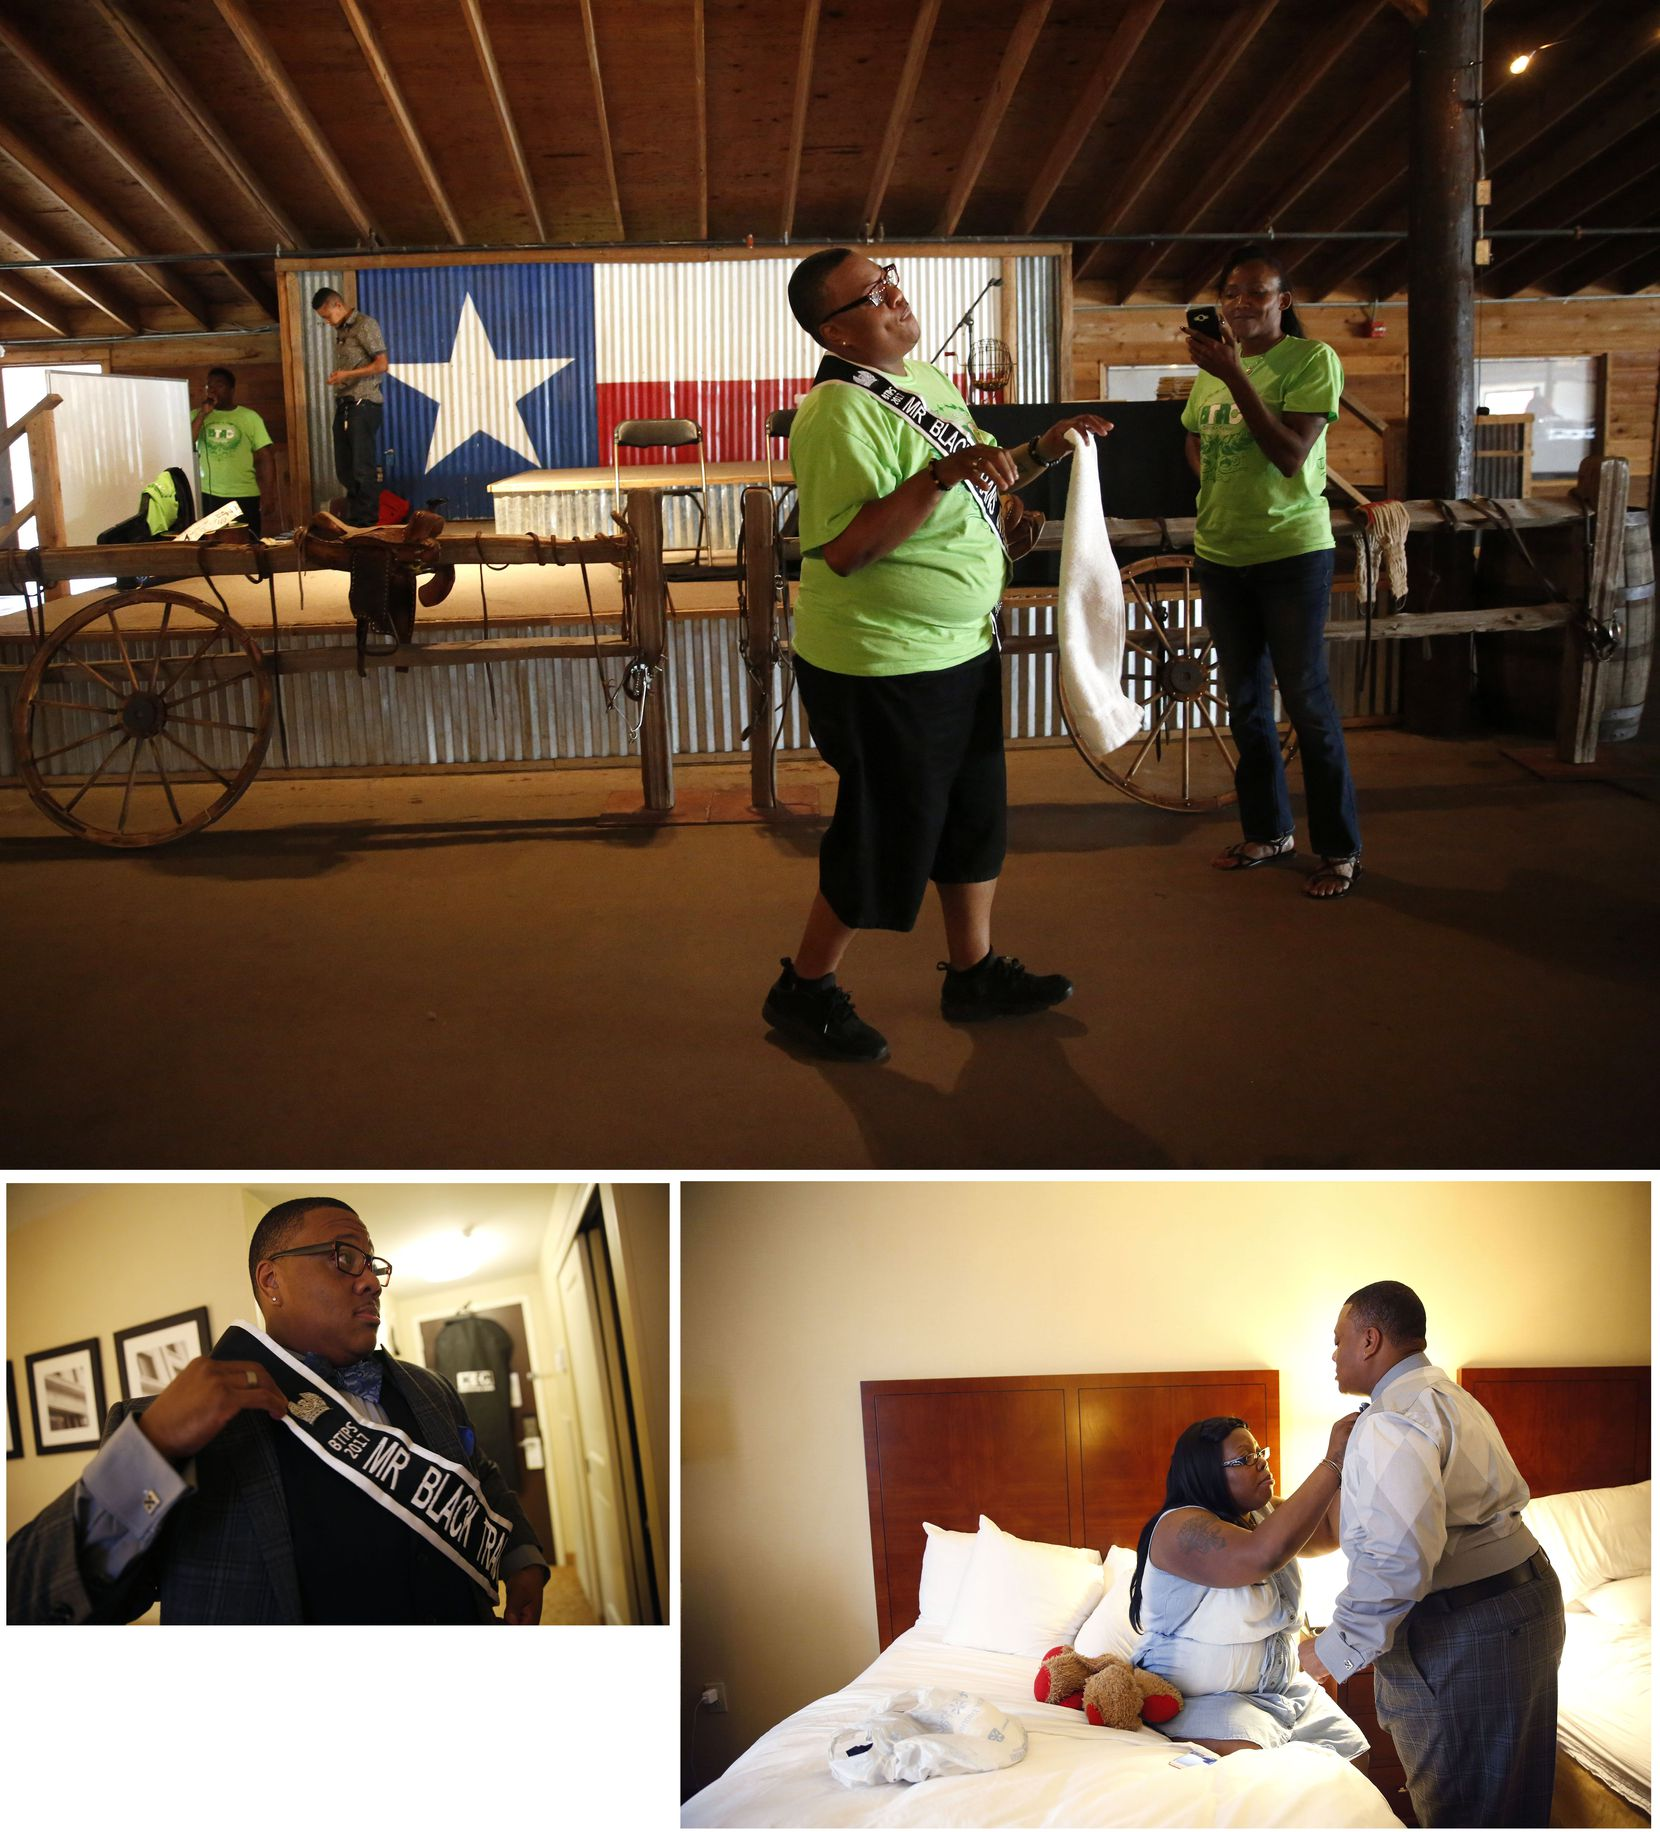 """(clockwise from top) Trenton dances by the stage during the Black Trans Advocacy Conference """"family day"""" at Circle R Ranch in Flower Mound on Saturday, April 29, 2017. The night before, he donned his sash and got help with his bowtie from his fiancee Bridget Charleston before the Black Trans Advocacy Conference gala."""